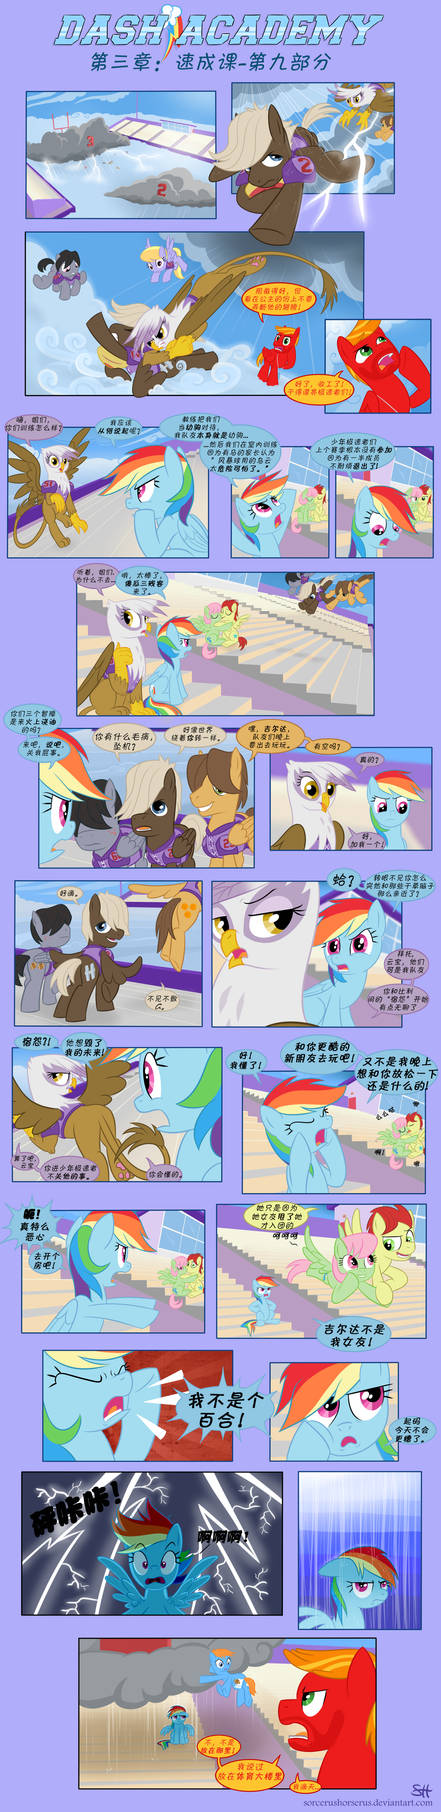 Dash Academy Chapter3 part9 (Chinese)